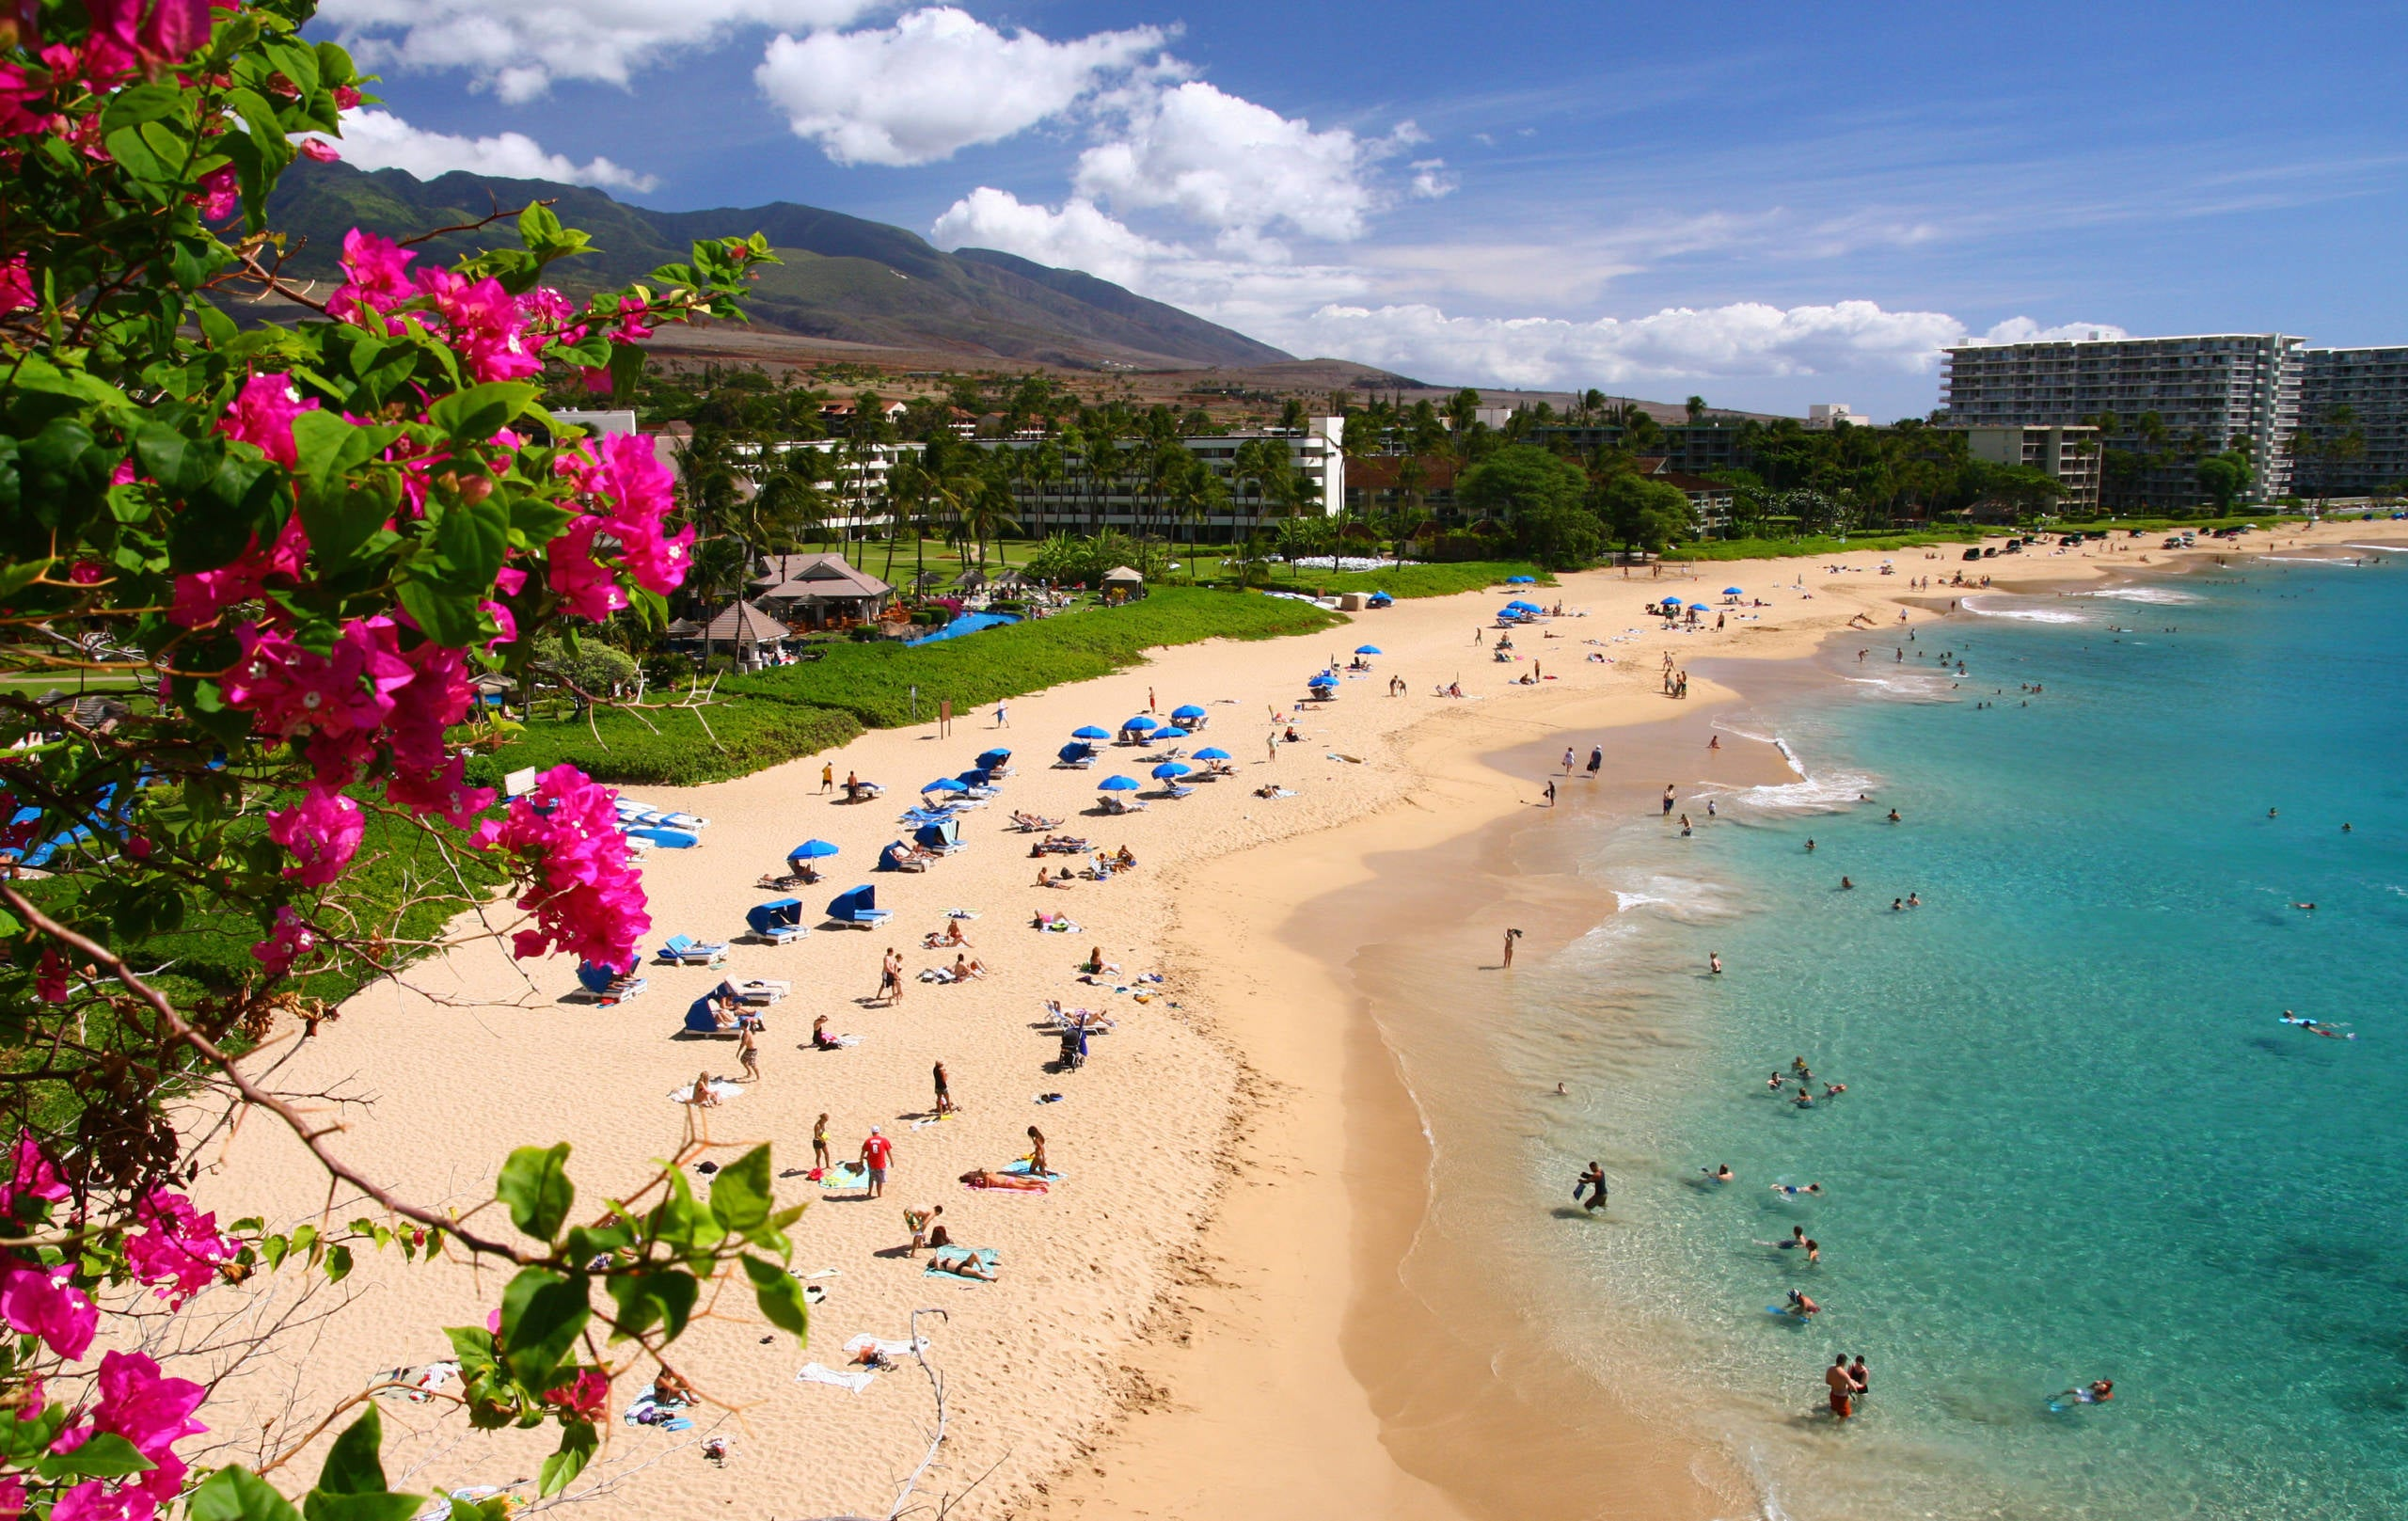 The best ways to get to Hawaii using points and miles